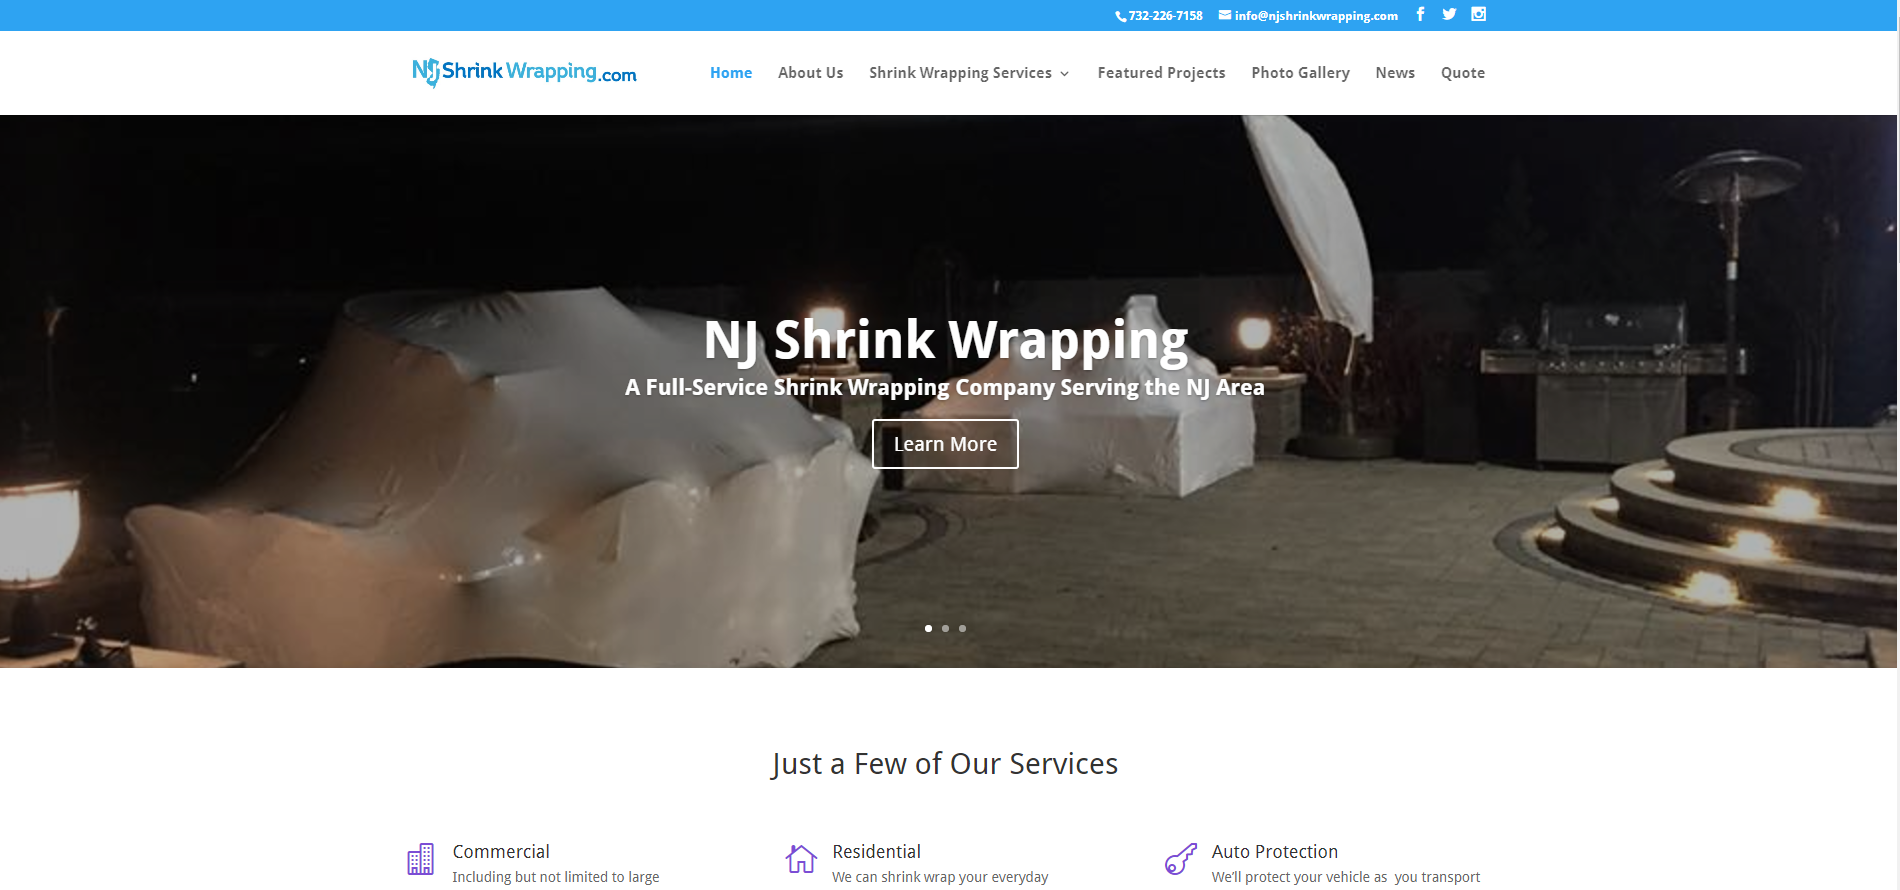 NJ Shrink Wrapping